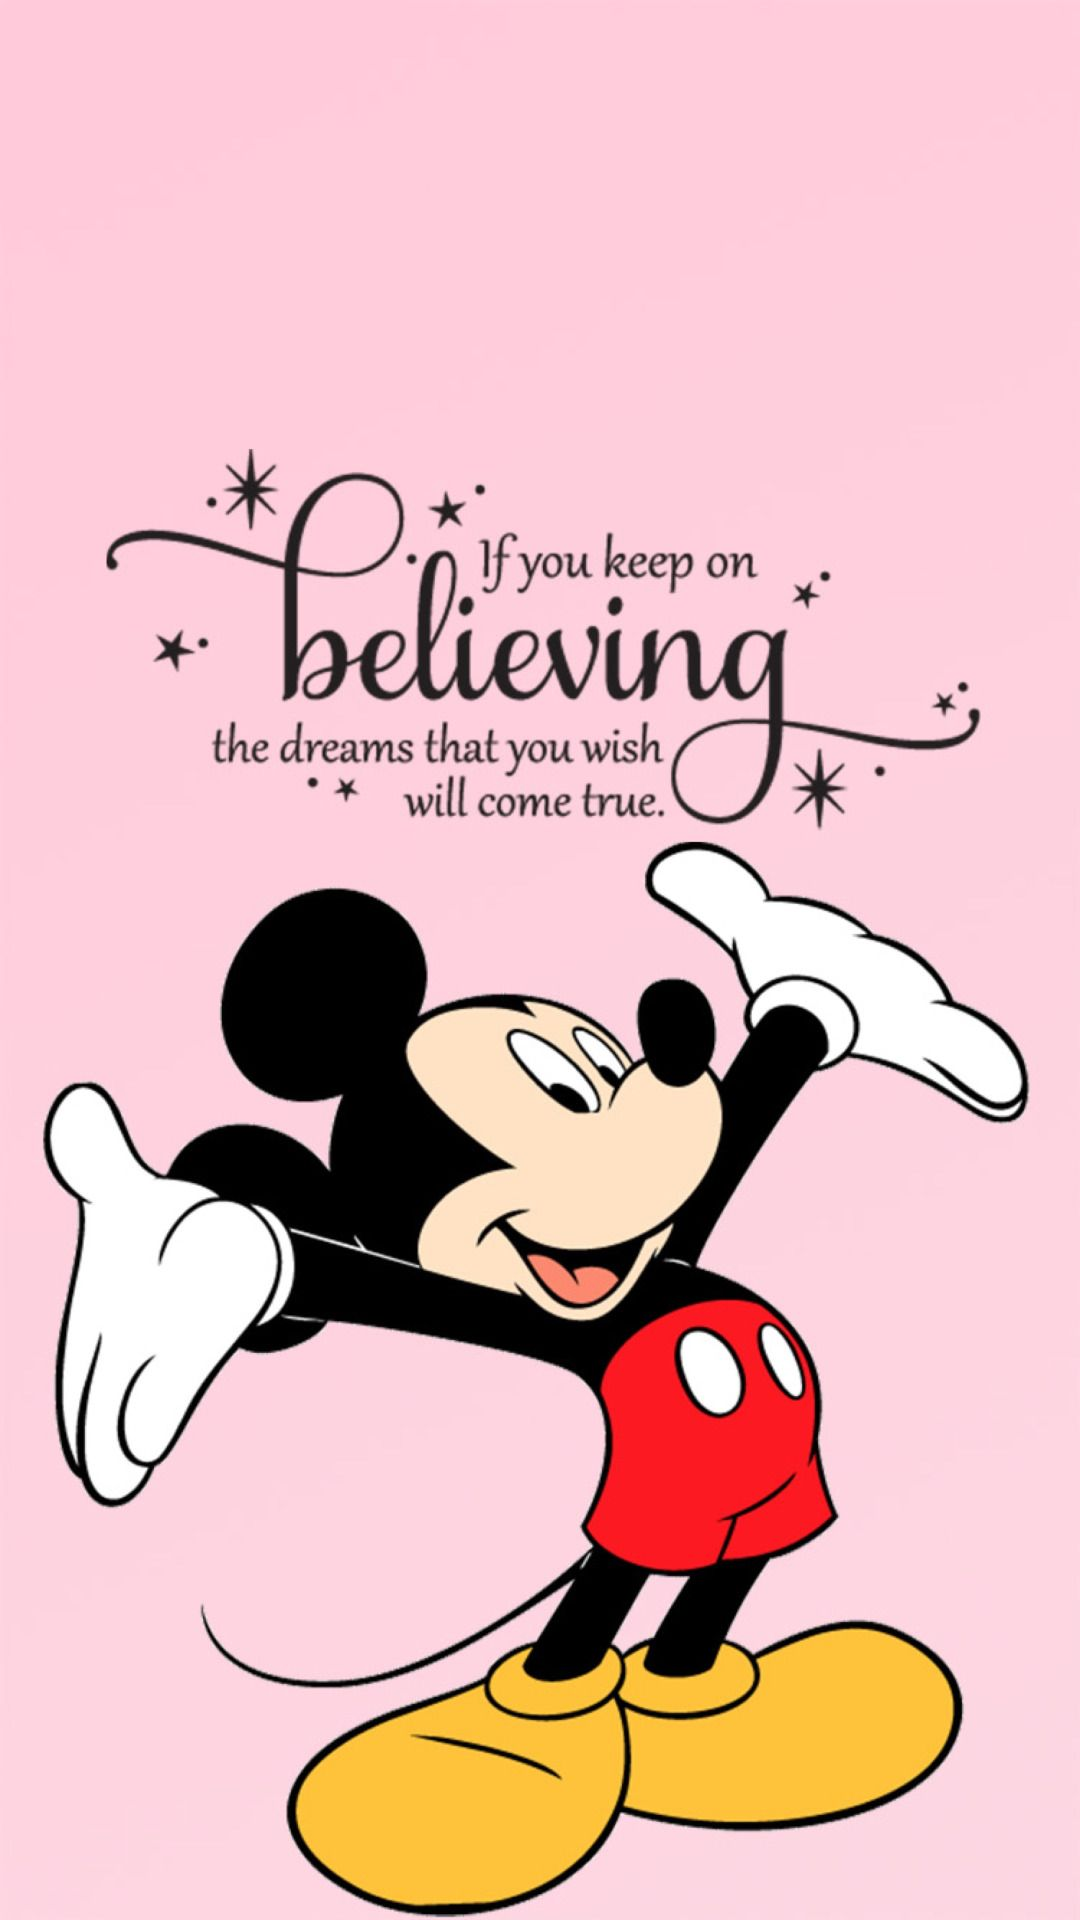 Mickey Mouse Wallpaper Iphone, Disney Wallpaper, Iphone Wallpaper, Mickey Mouse Quotes, Mickey